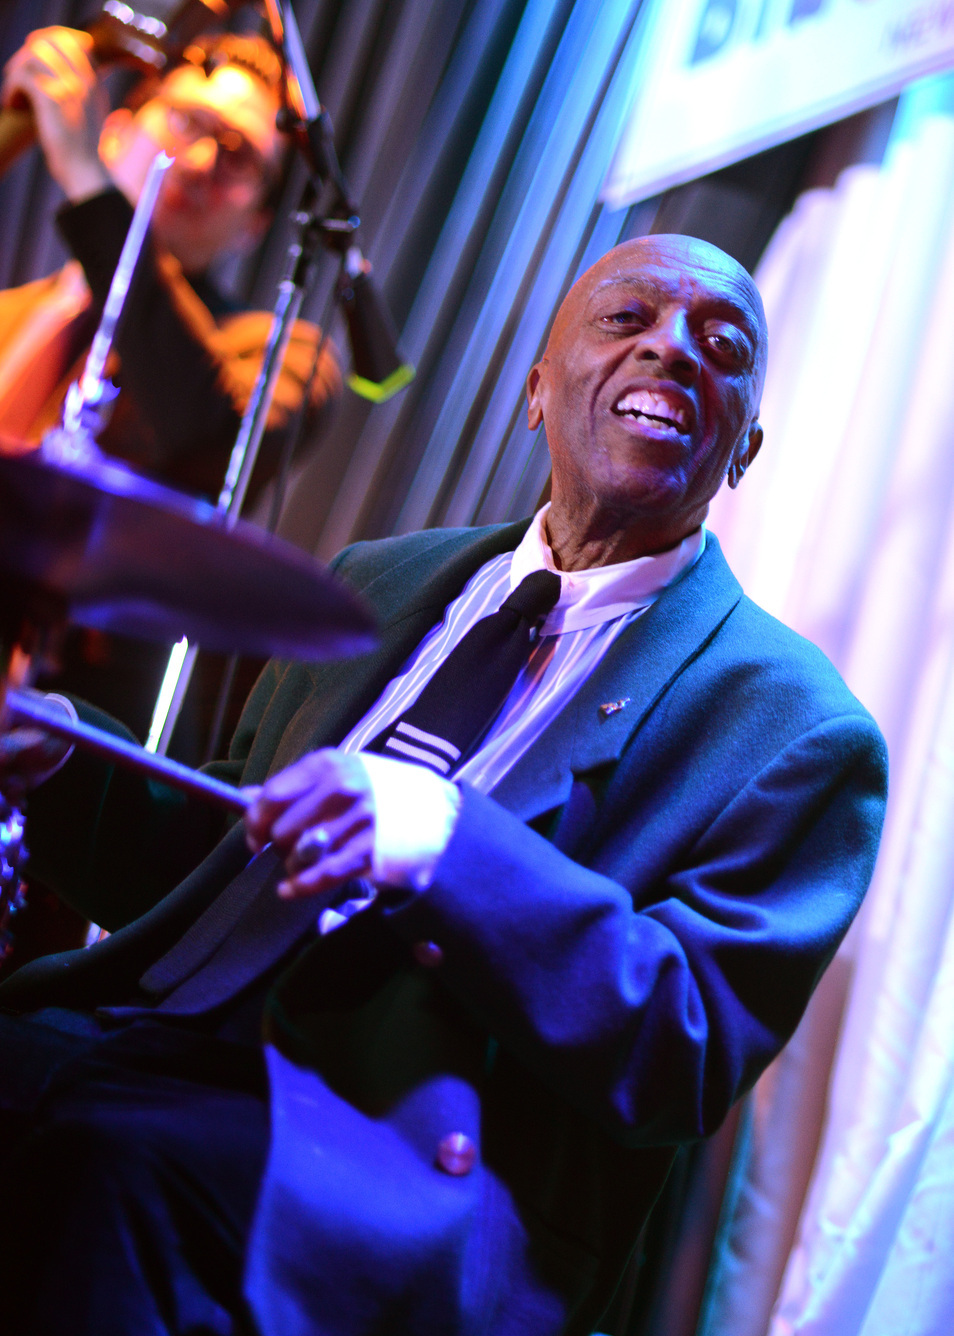 Turning 90, legendary drummer Roy Haynes celebrates with Pat Metheny & Christian McBride (Jazz Times, 3/16/15)